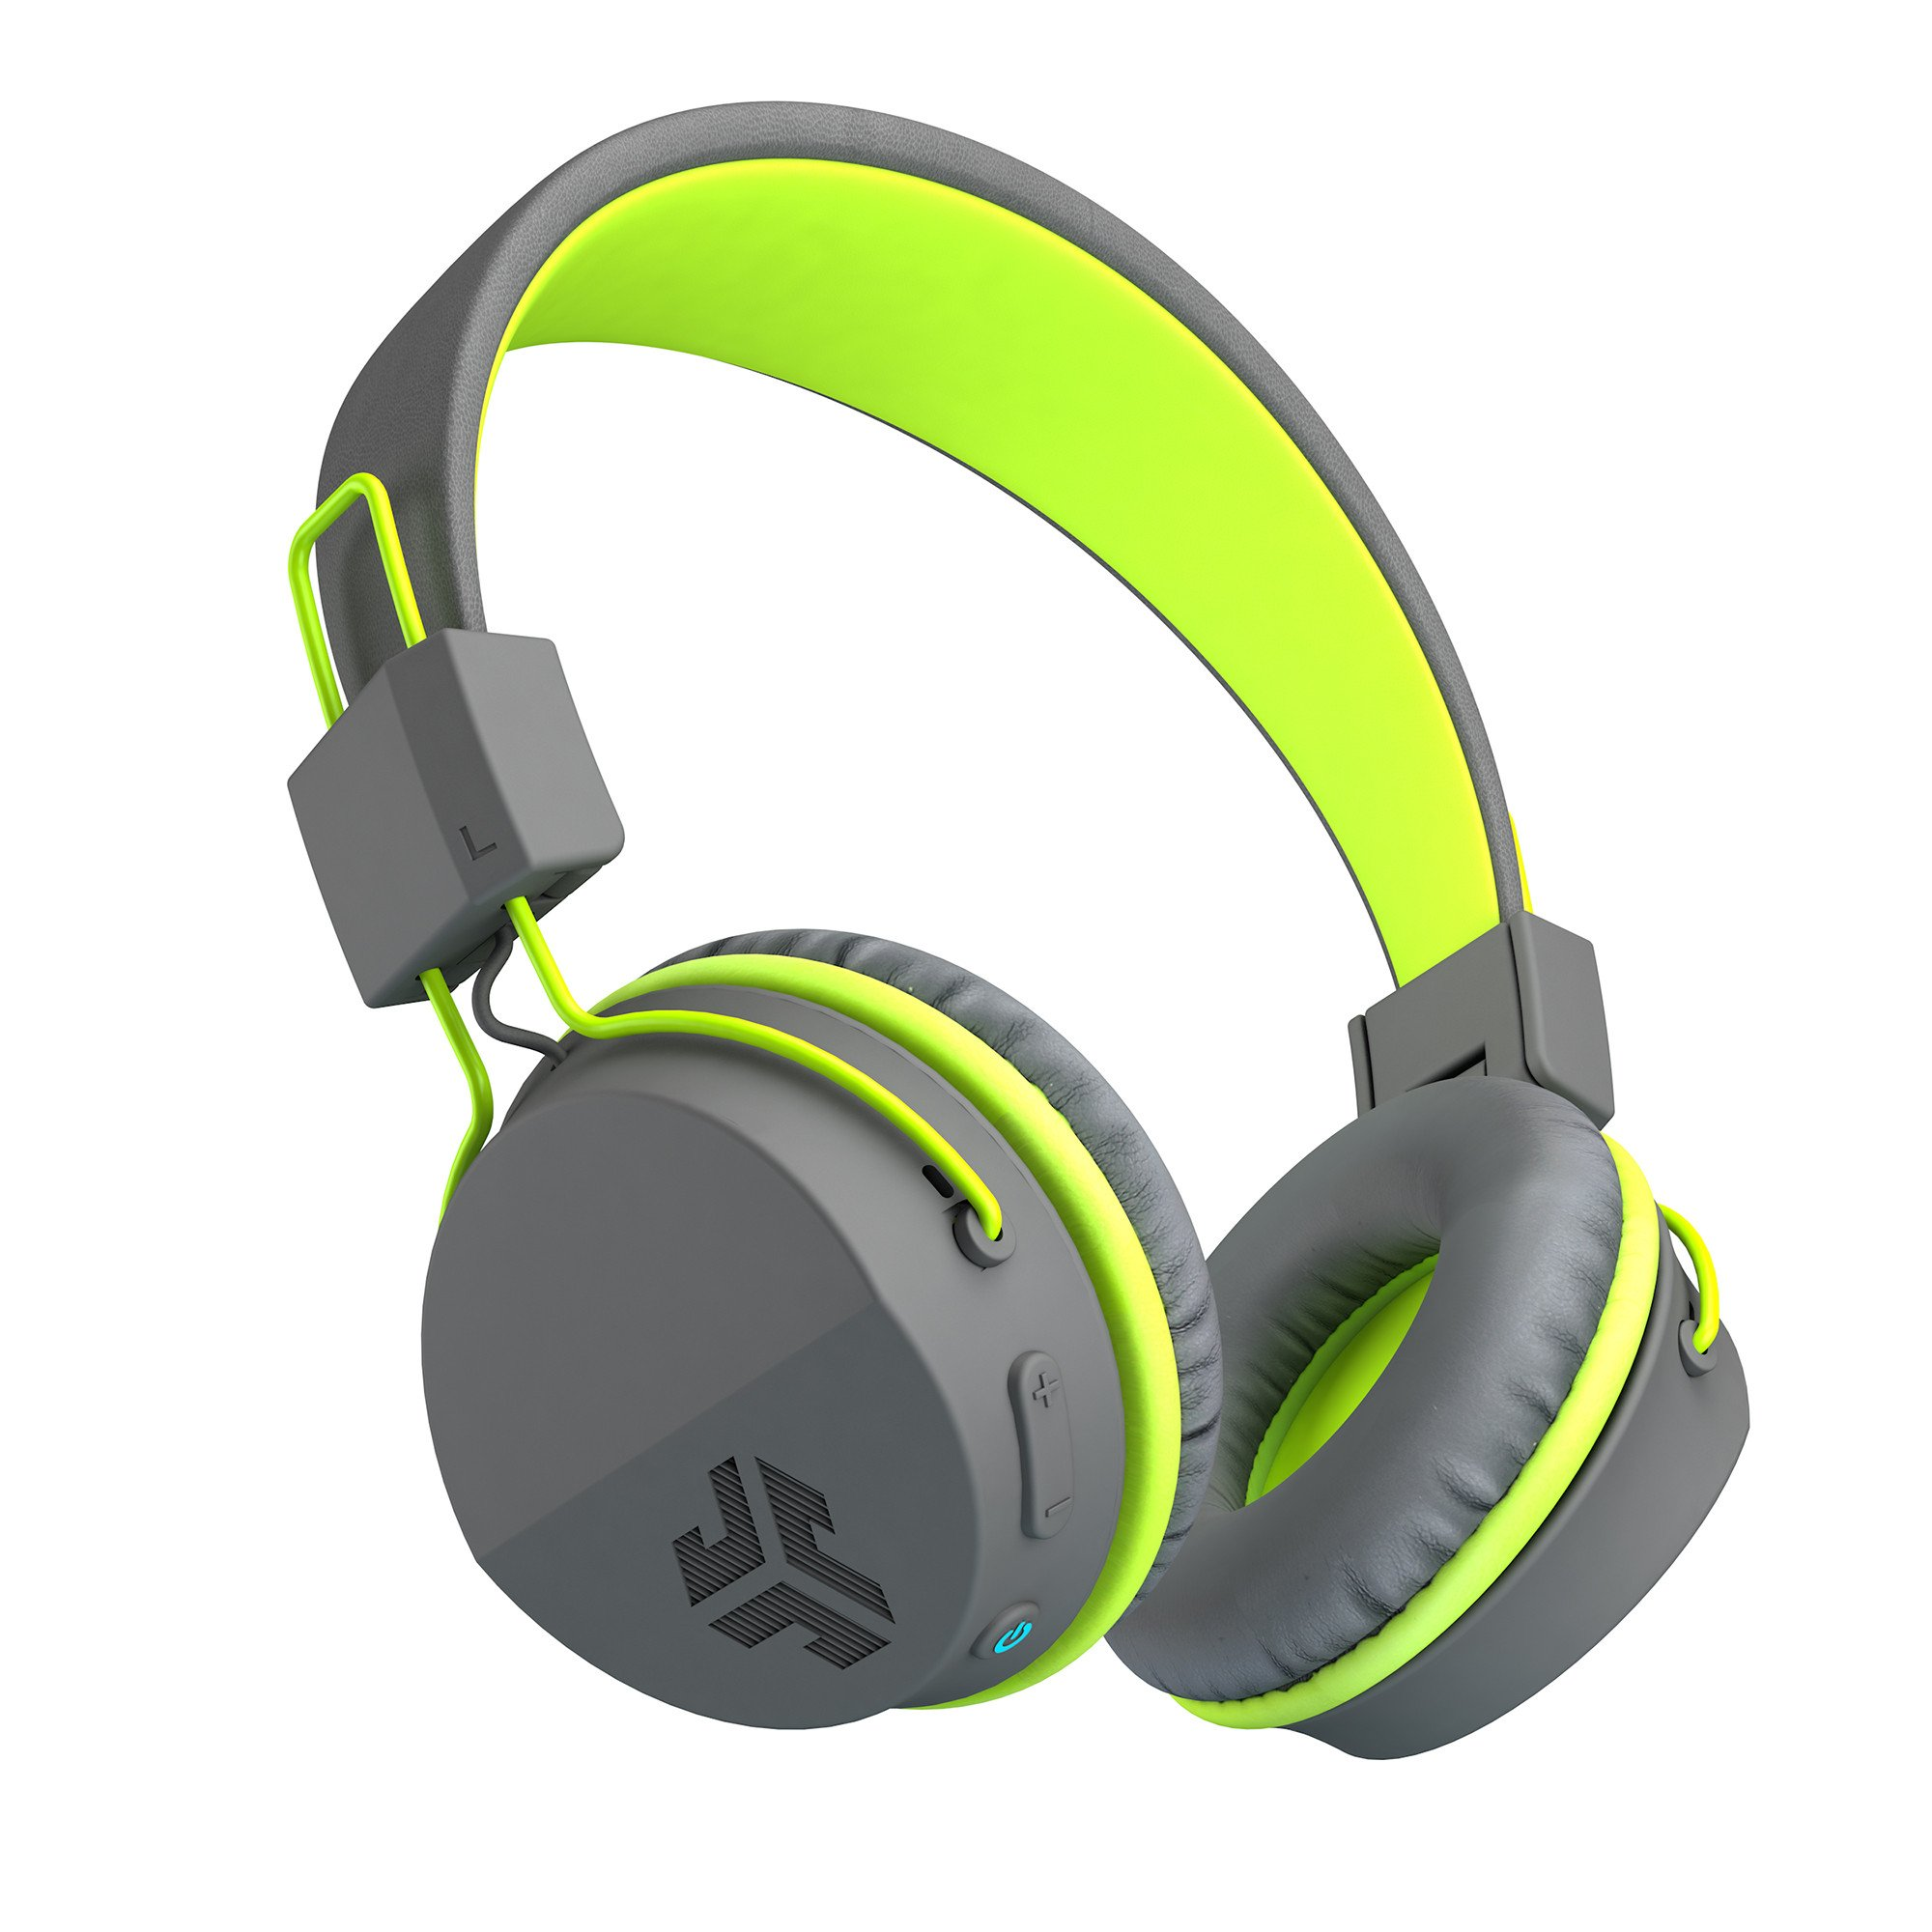 JLab Audio Neon Bluetooth On Ear Headphones, Folding with Universal Mic - Gray/Green